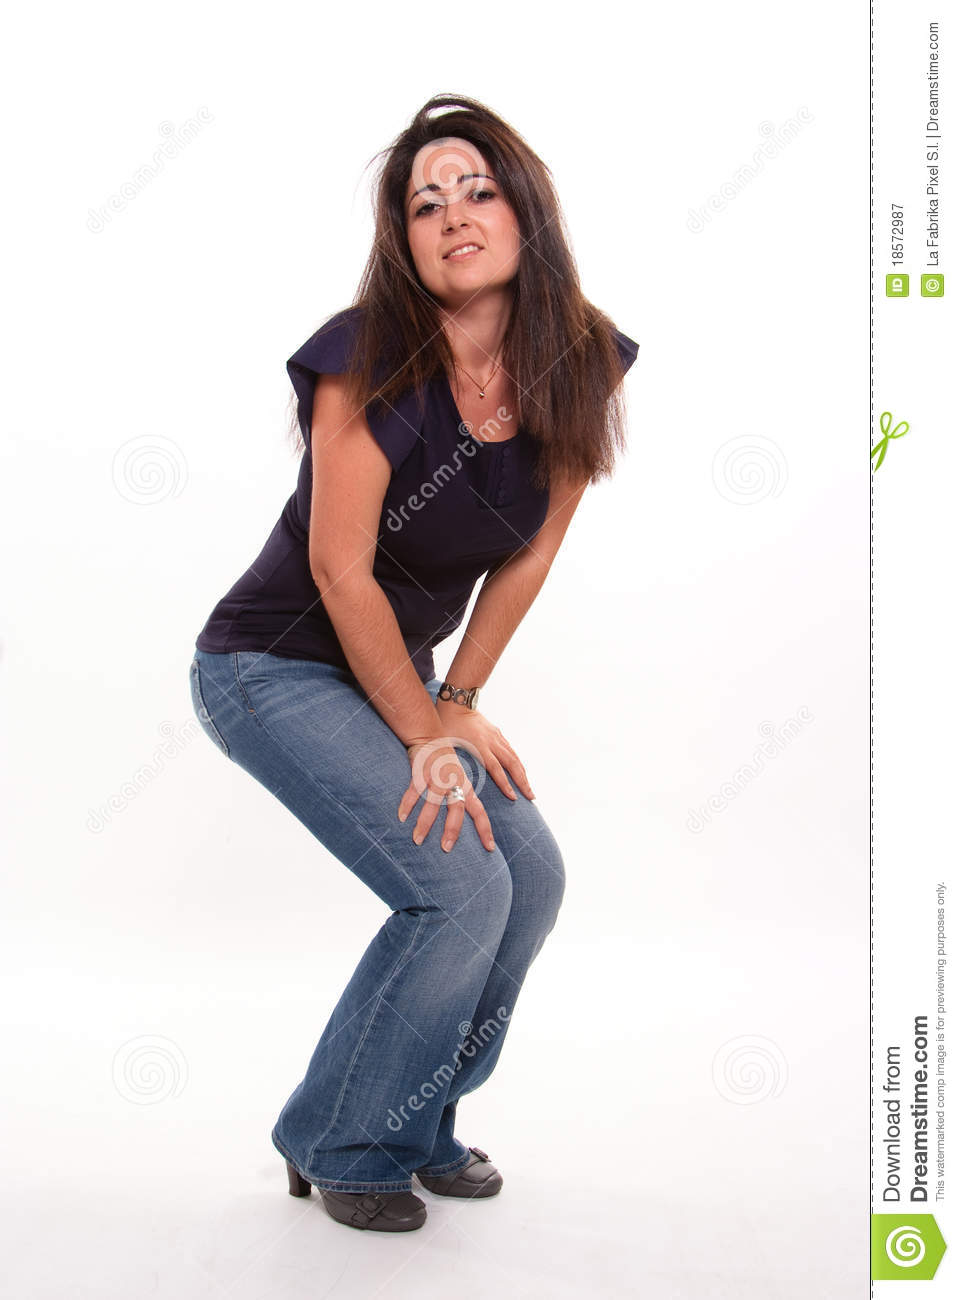 Pretty Girl Crouching Stock Photo - Download Image Now